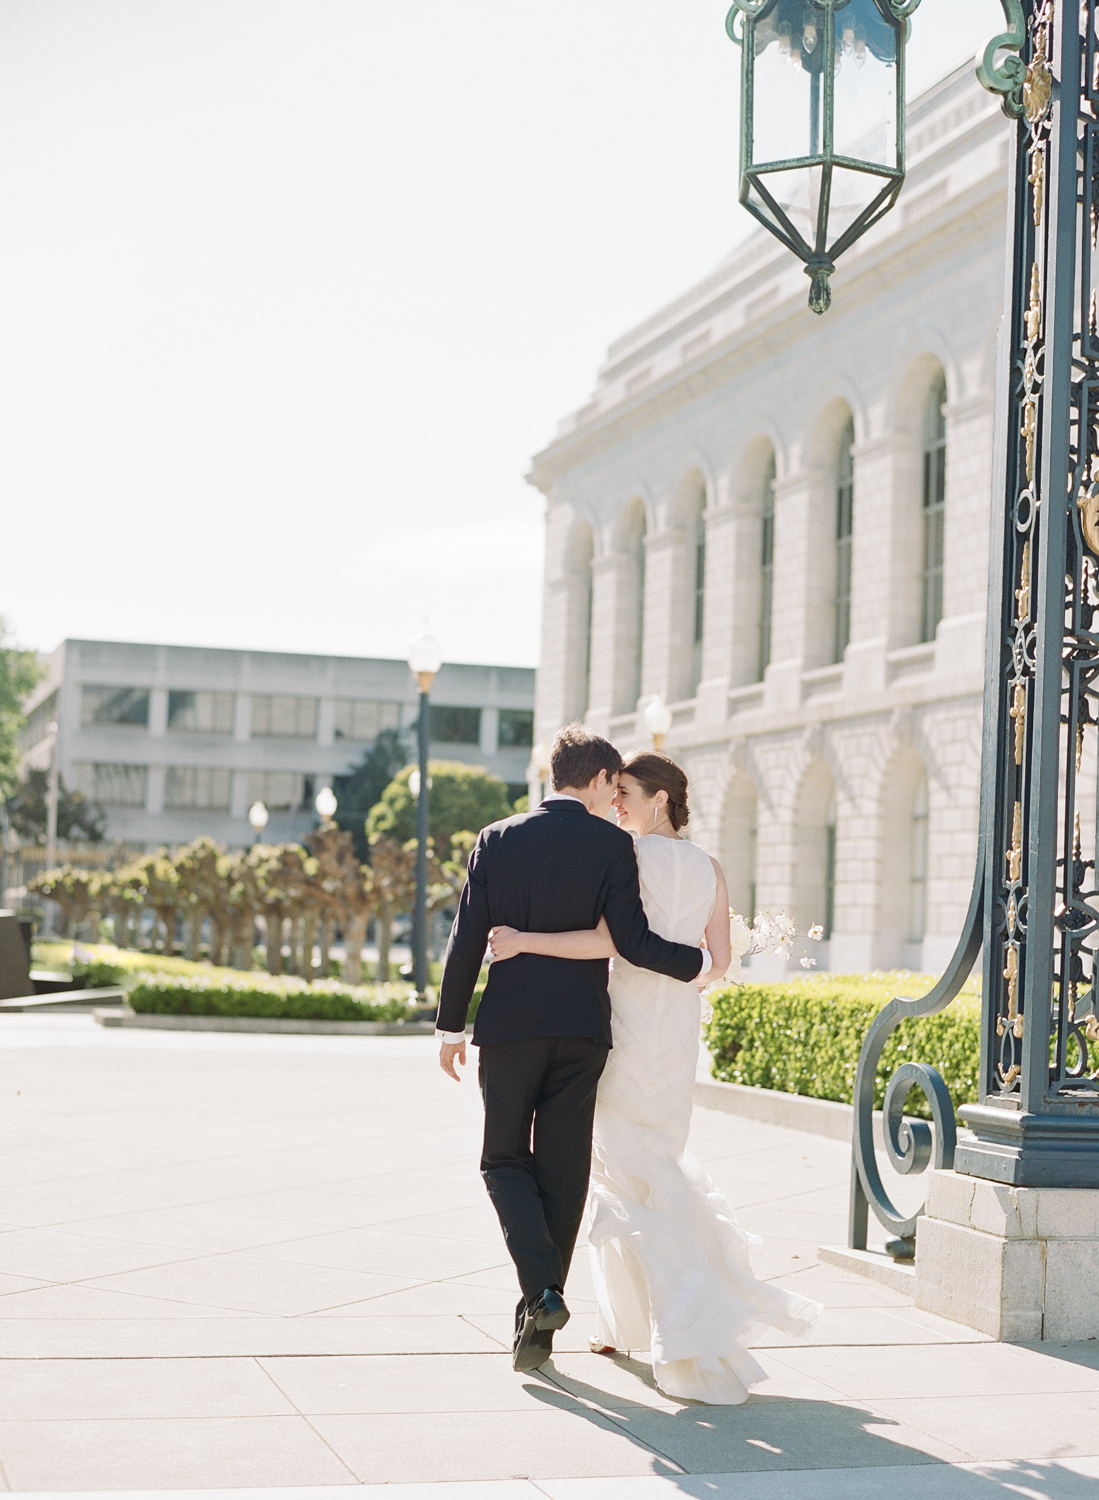 The bride and groom walk through the gate at San Francisco City Hall before the wedding; Sylvie Gil Photography